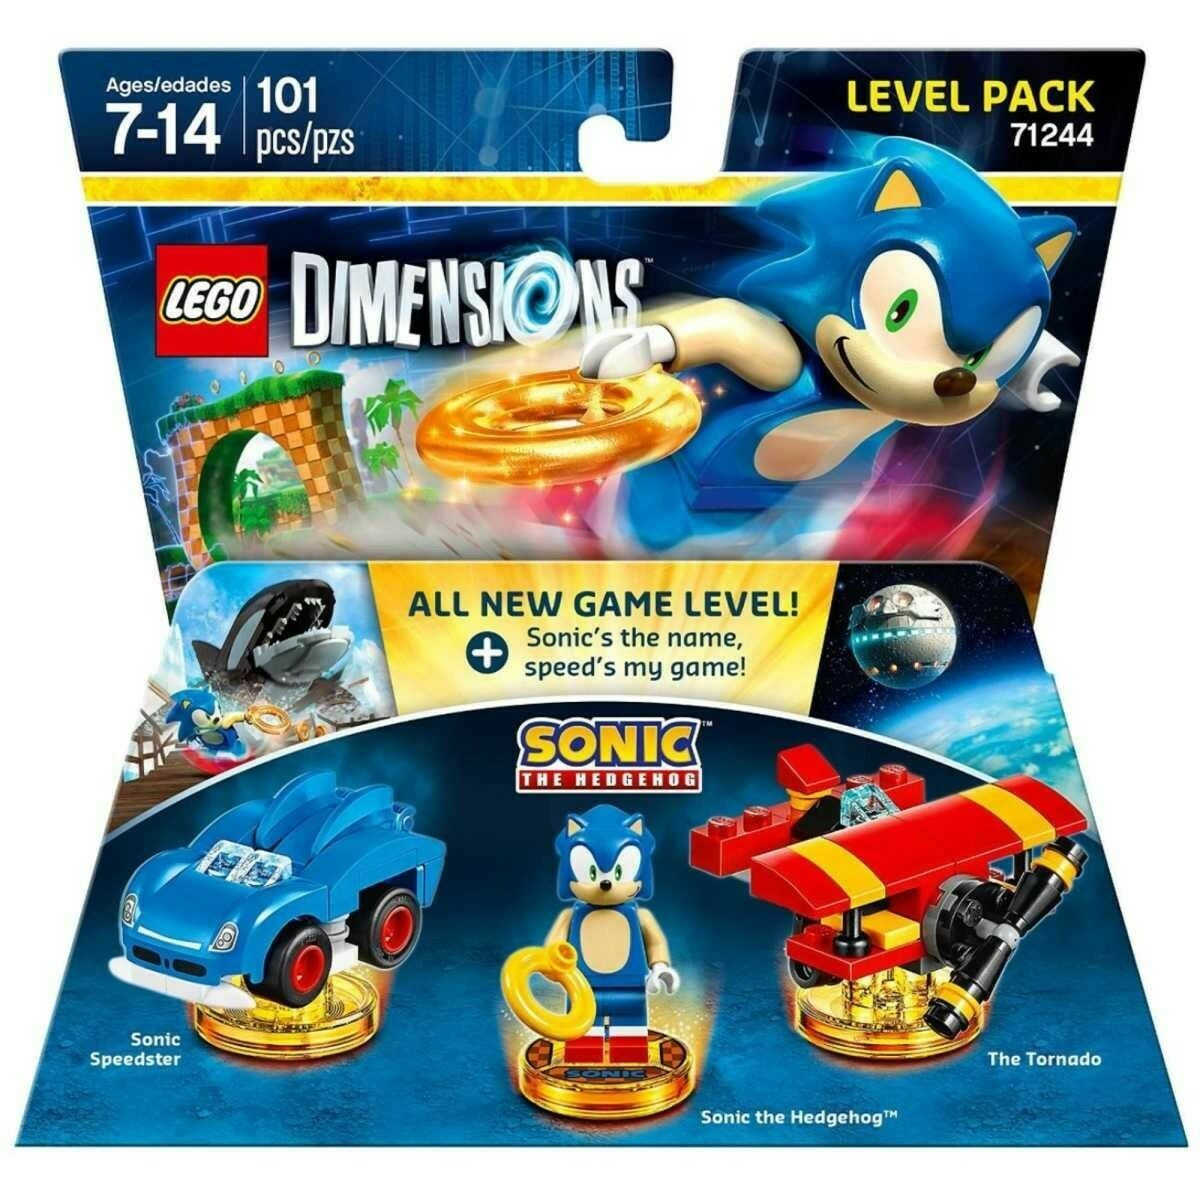 Lego 71244 - Dimensions - Sonic the Hedgehog Level Verpackung - Meerled - Masse3